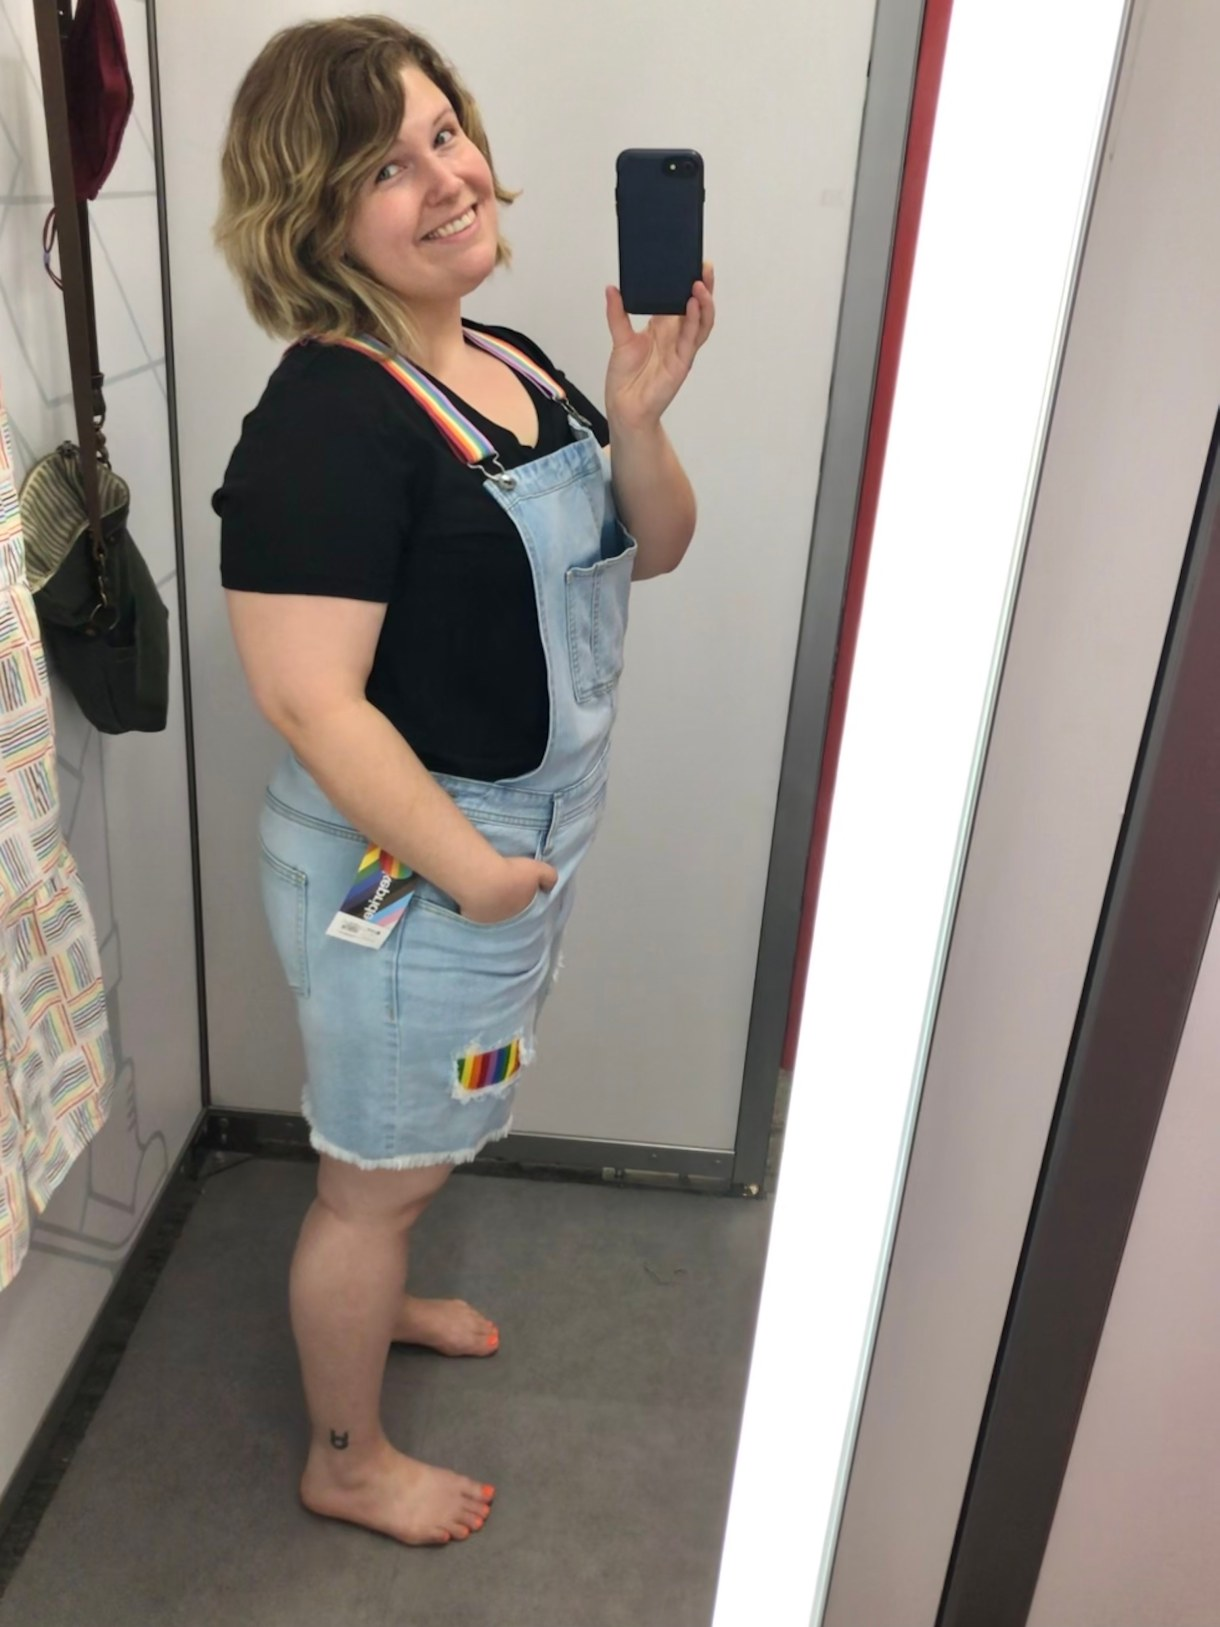 Caley posing in denim overalls in front of a mirror taking a selfie